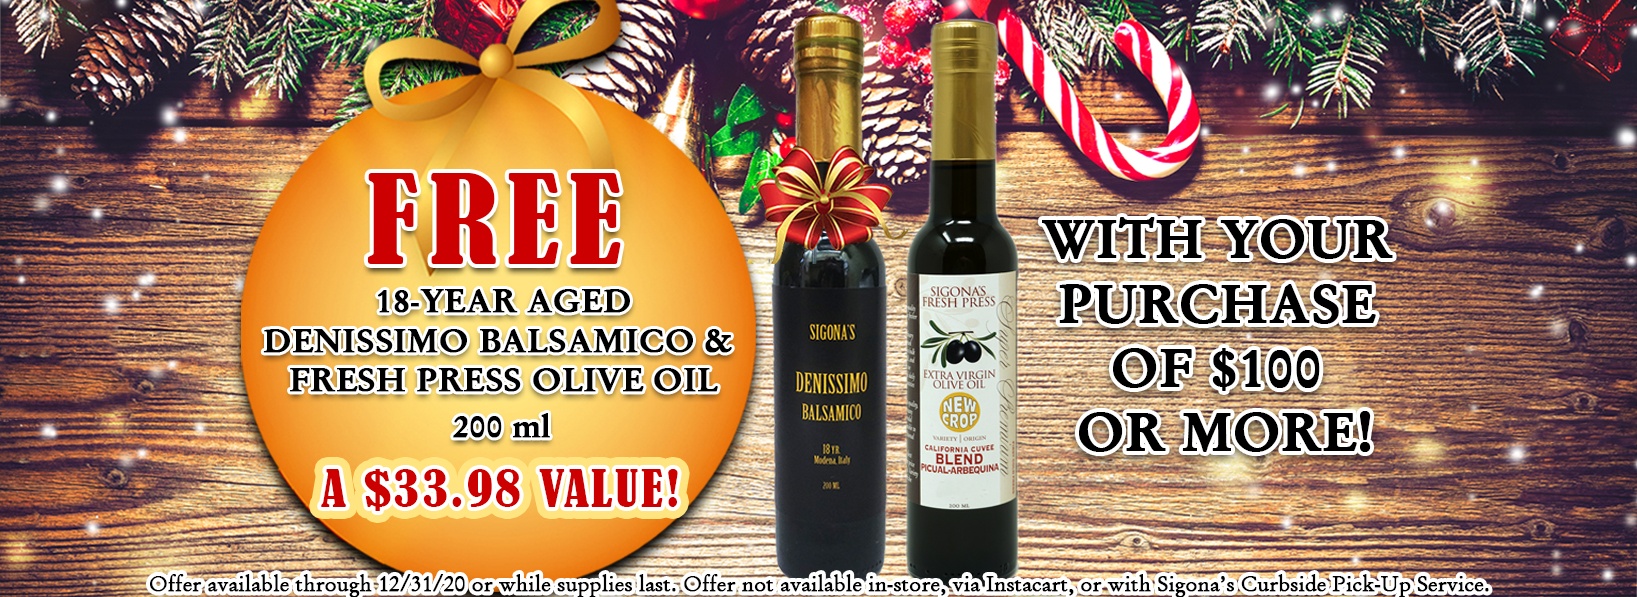 free 18 year and evoo